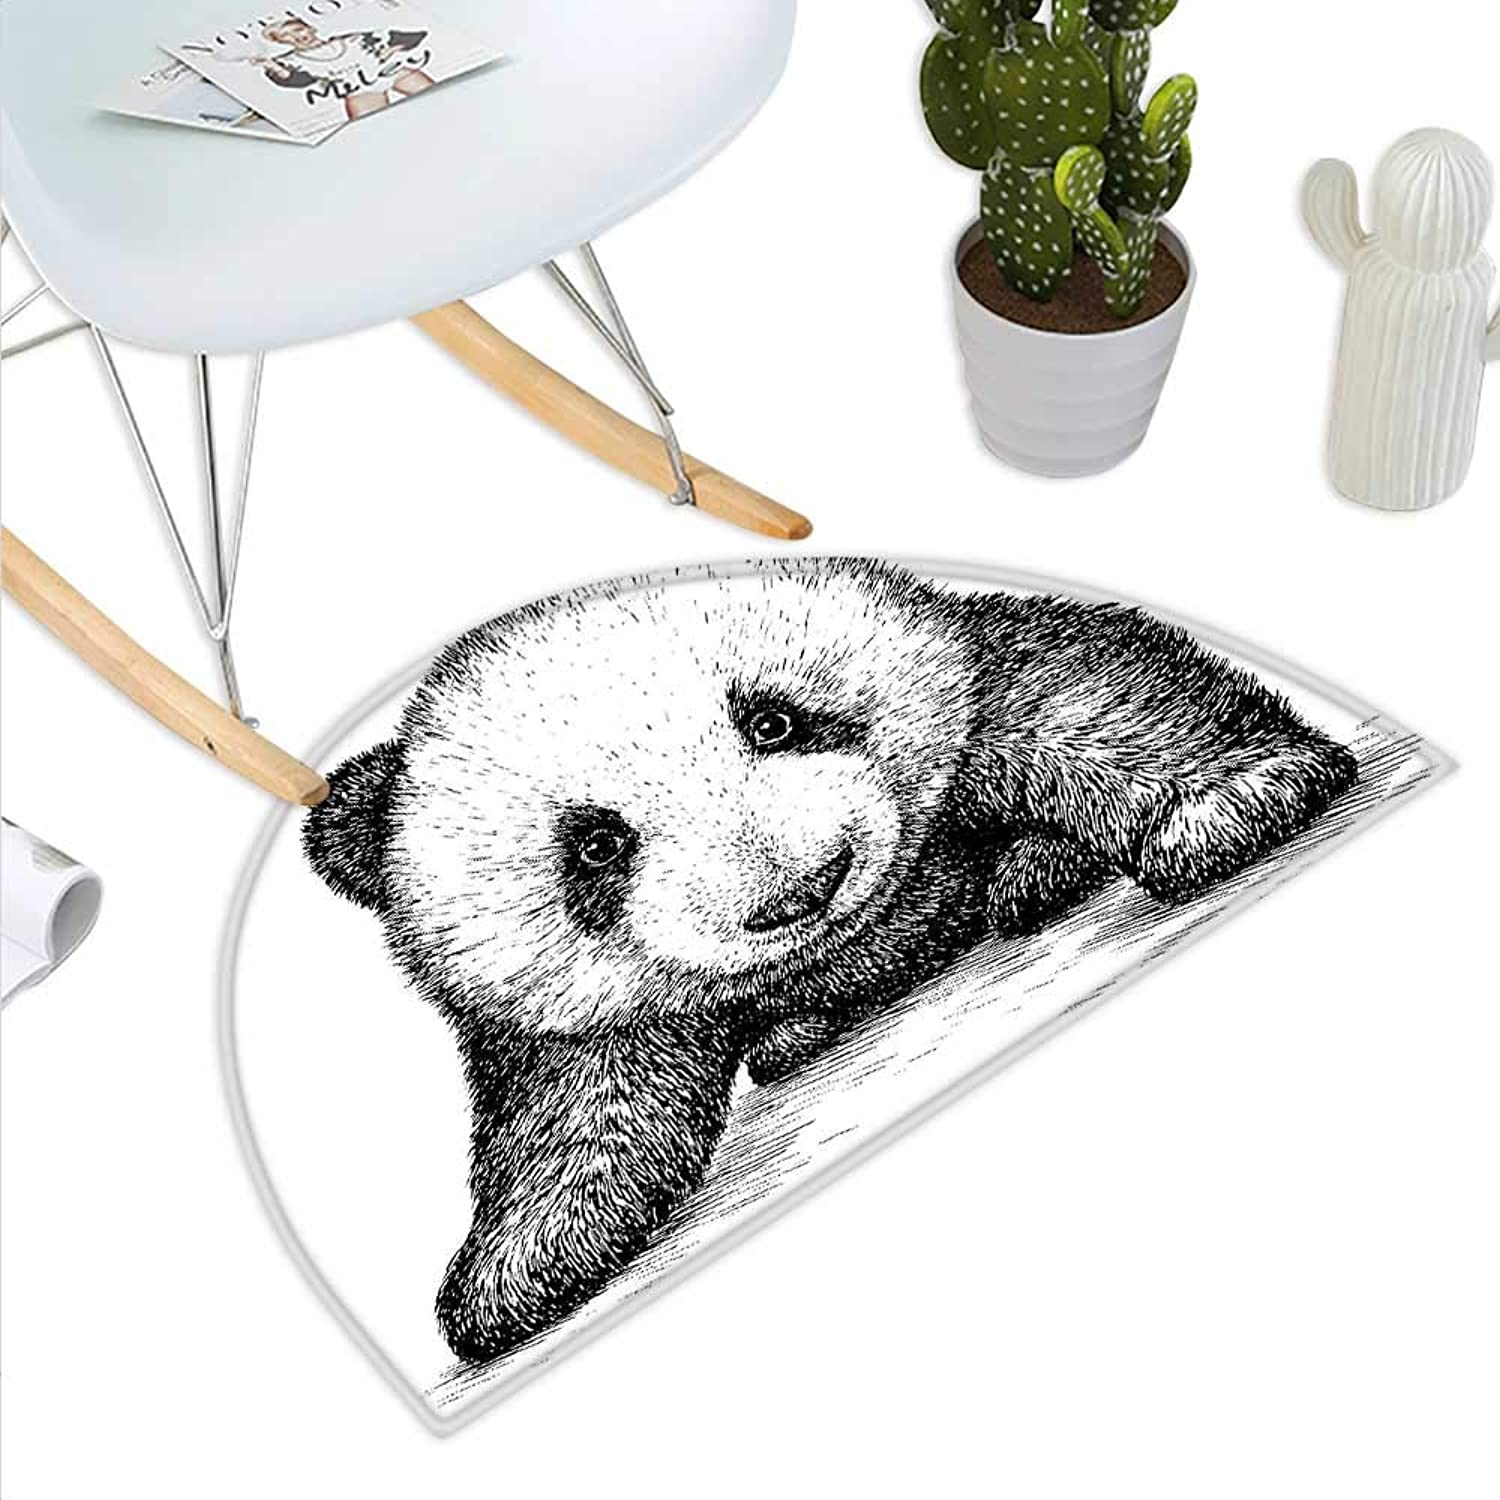 Panda Semicircle Doormat Baby Panda Bear Illustration Sketch Style Artwork Asian Nature Wild Animals Theme Halfmoon doormats H 39.3  xD 59  Black White